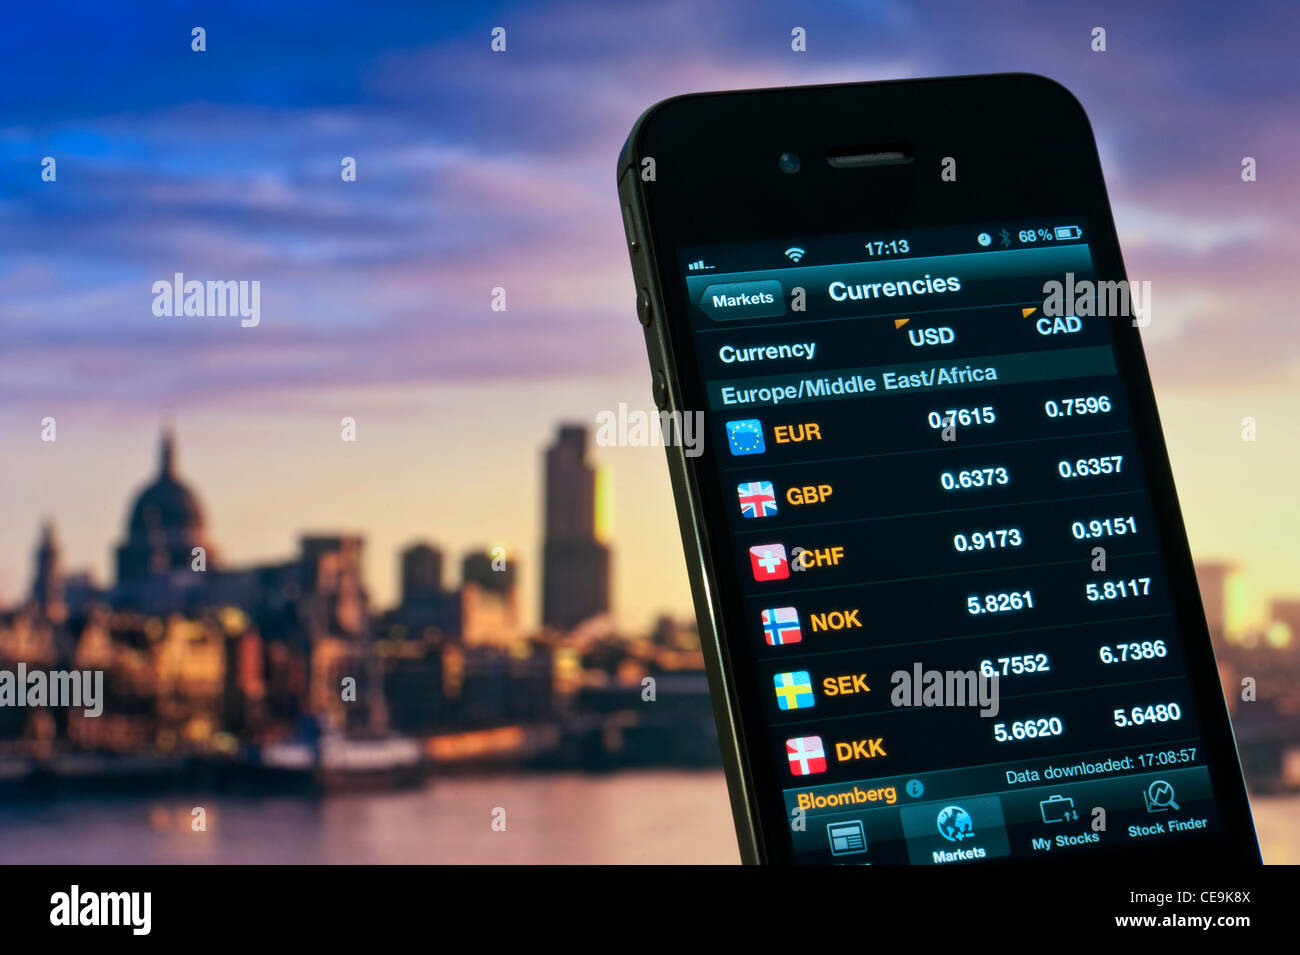 iPhone 4s screen displaying European currency rates data compared to US and Canadian dollar - Stock Image